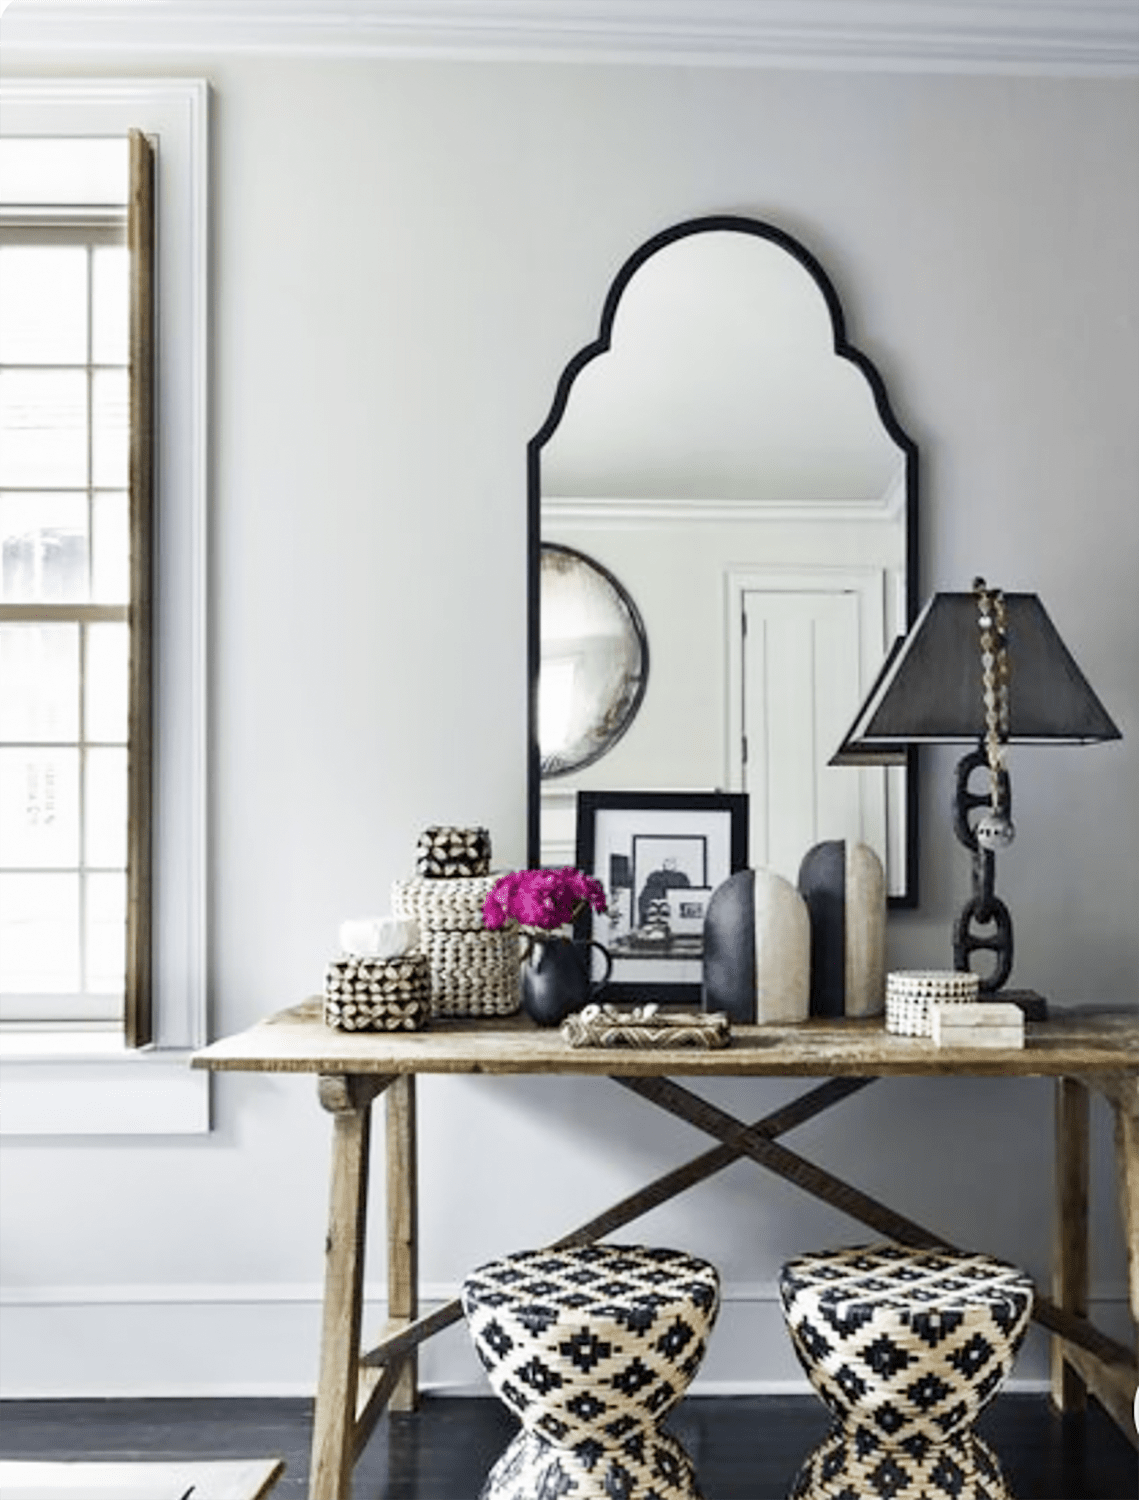 jill sharp weeks console and mirror